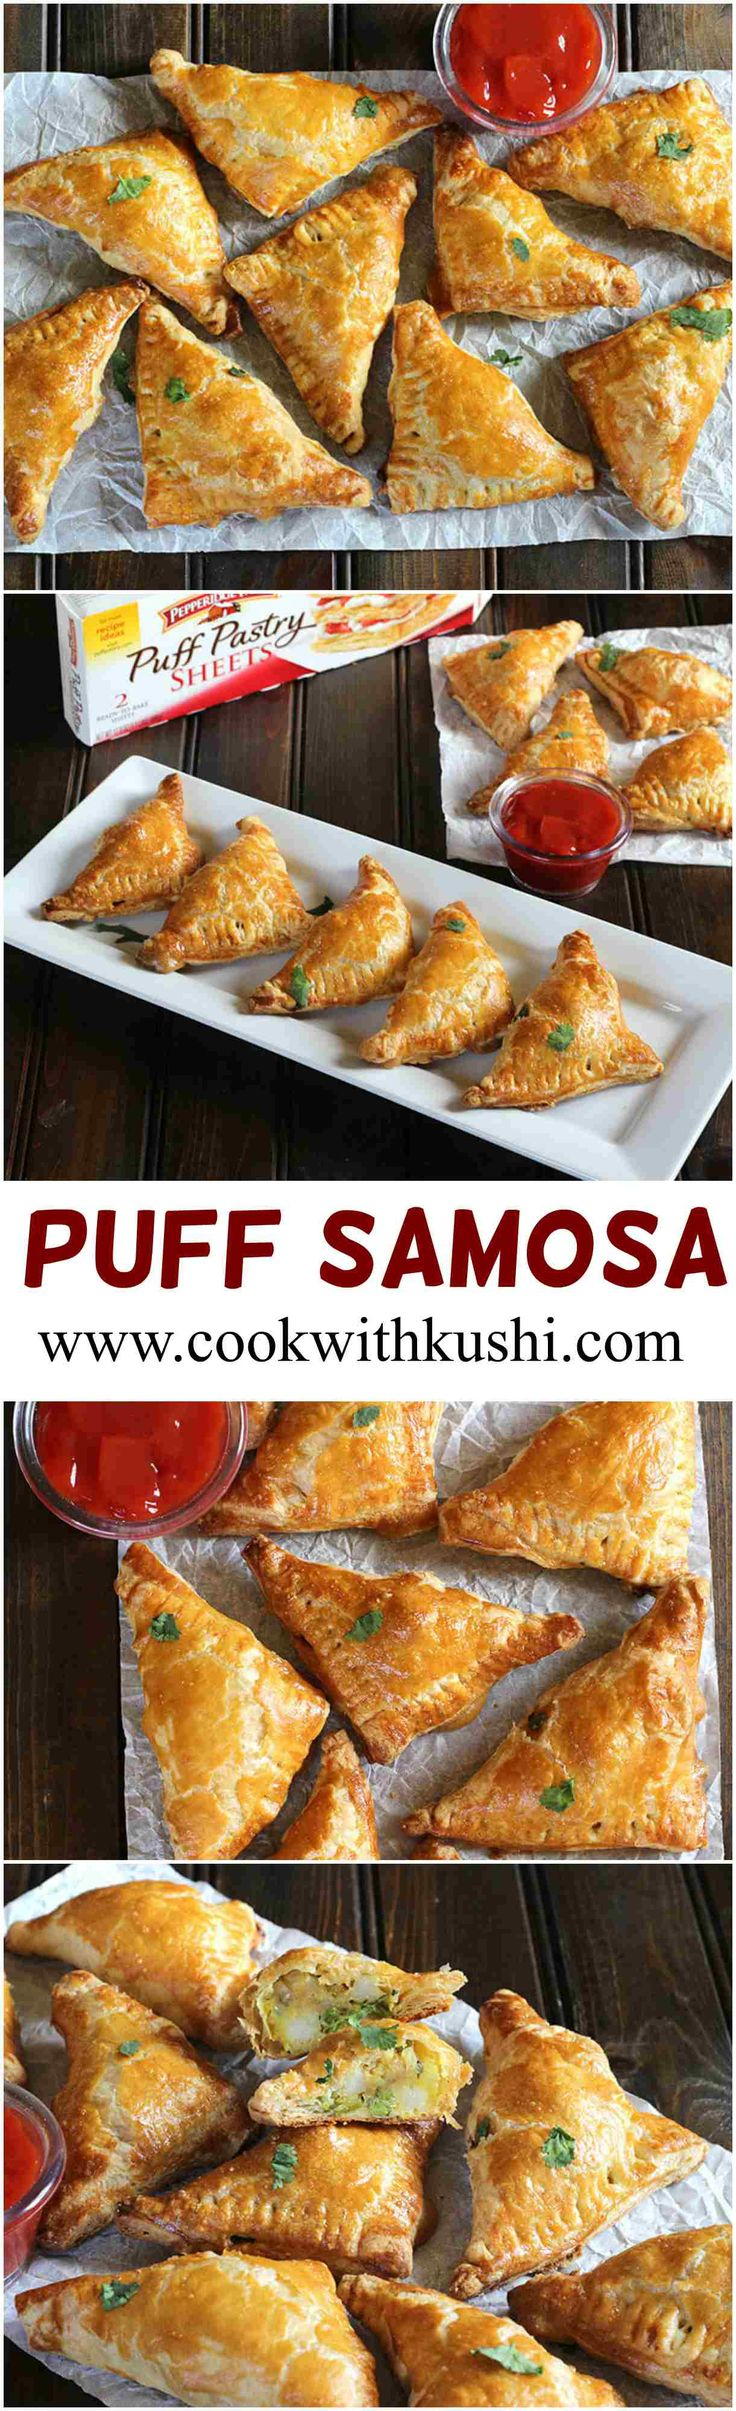 Puff Samosa is a easy to make delicious appetizer with the crispy and golden flaky texture on the outside with a savory filling on the inside. This is a perfect finger food for your holiday gatherings, your next weekend party or any game night. #InspiredByPuff #ad @PFPuffPastry #sponsored #appetizer #snack #bake #vegan #delicious #fingerfood #fall #Holiday #halloween #thanksgiving #christmas